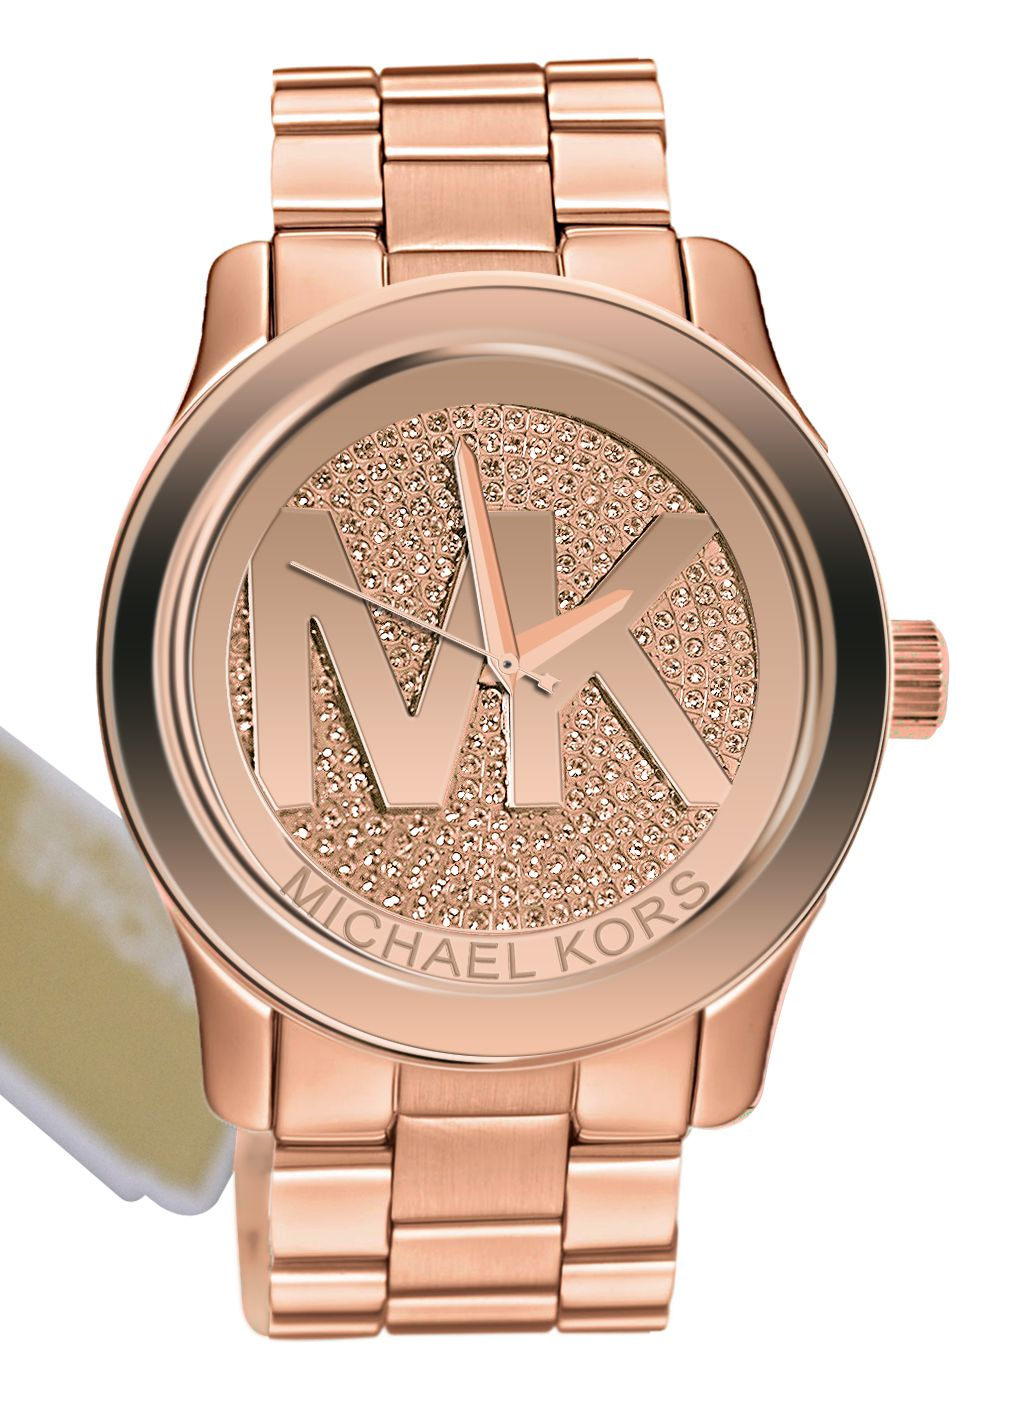 87a6c47a1f60 michael kors watch rose gold women - Google Search